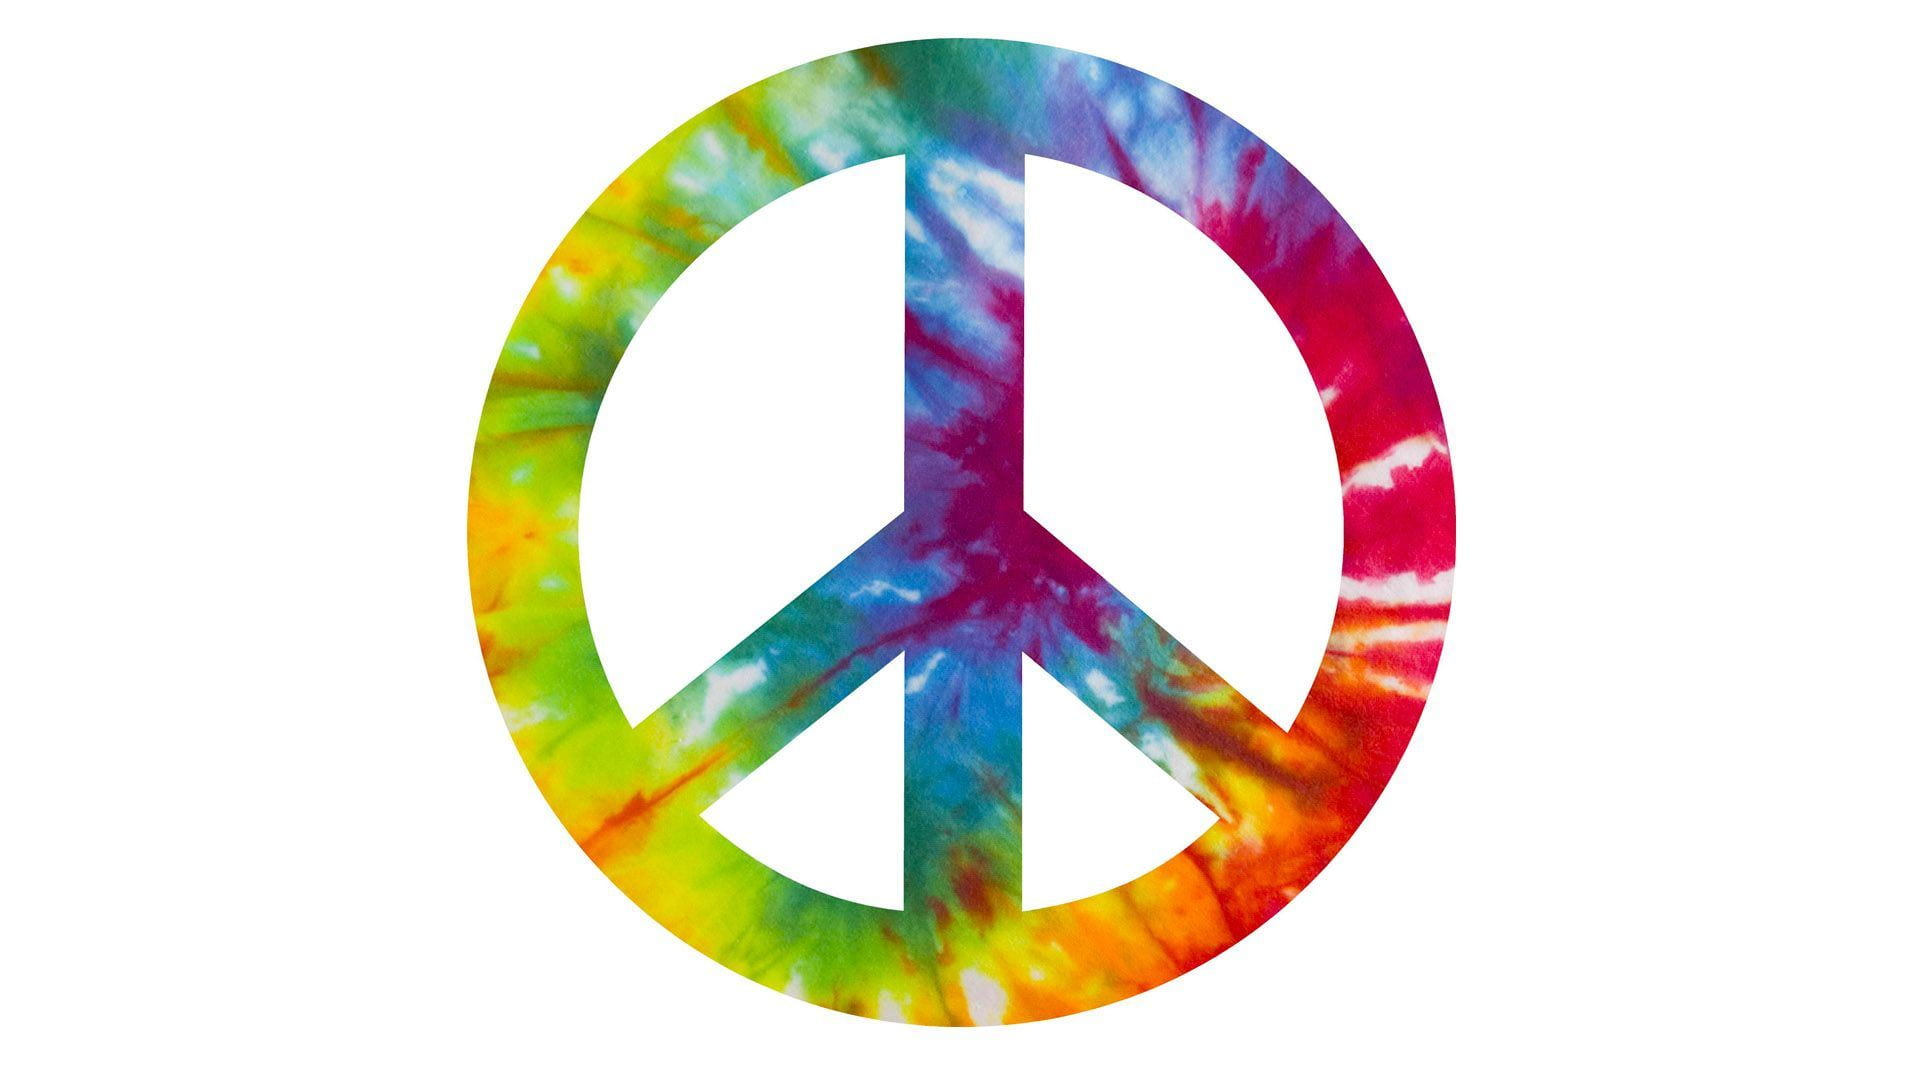 An image of the Peace sign